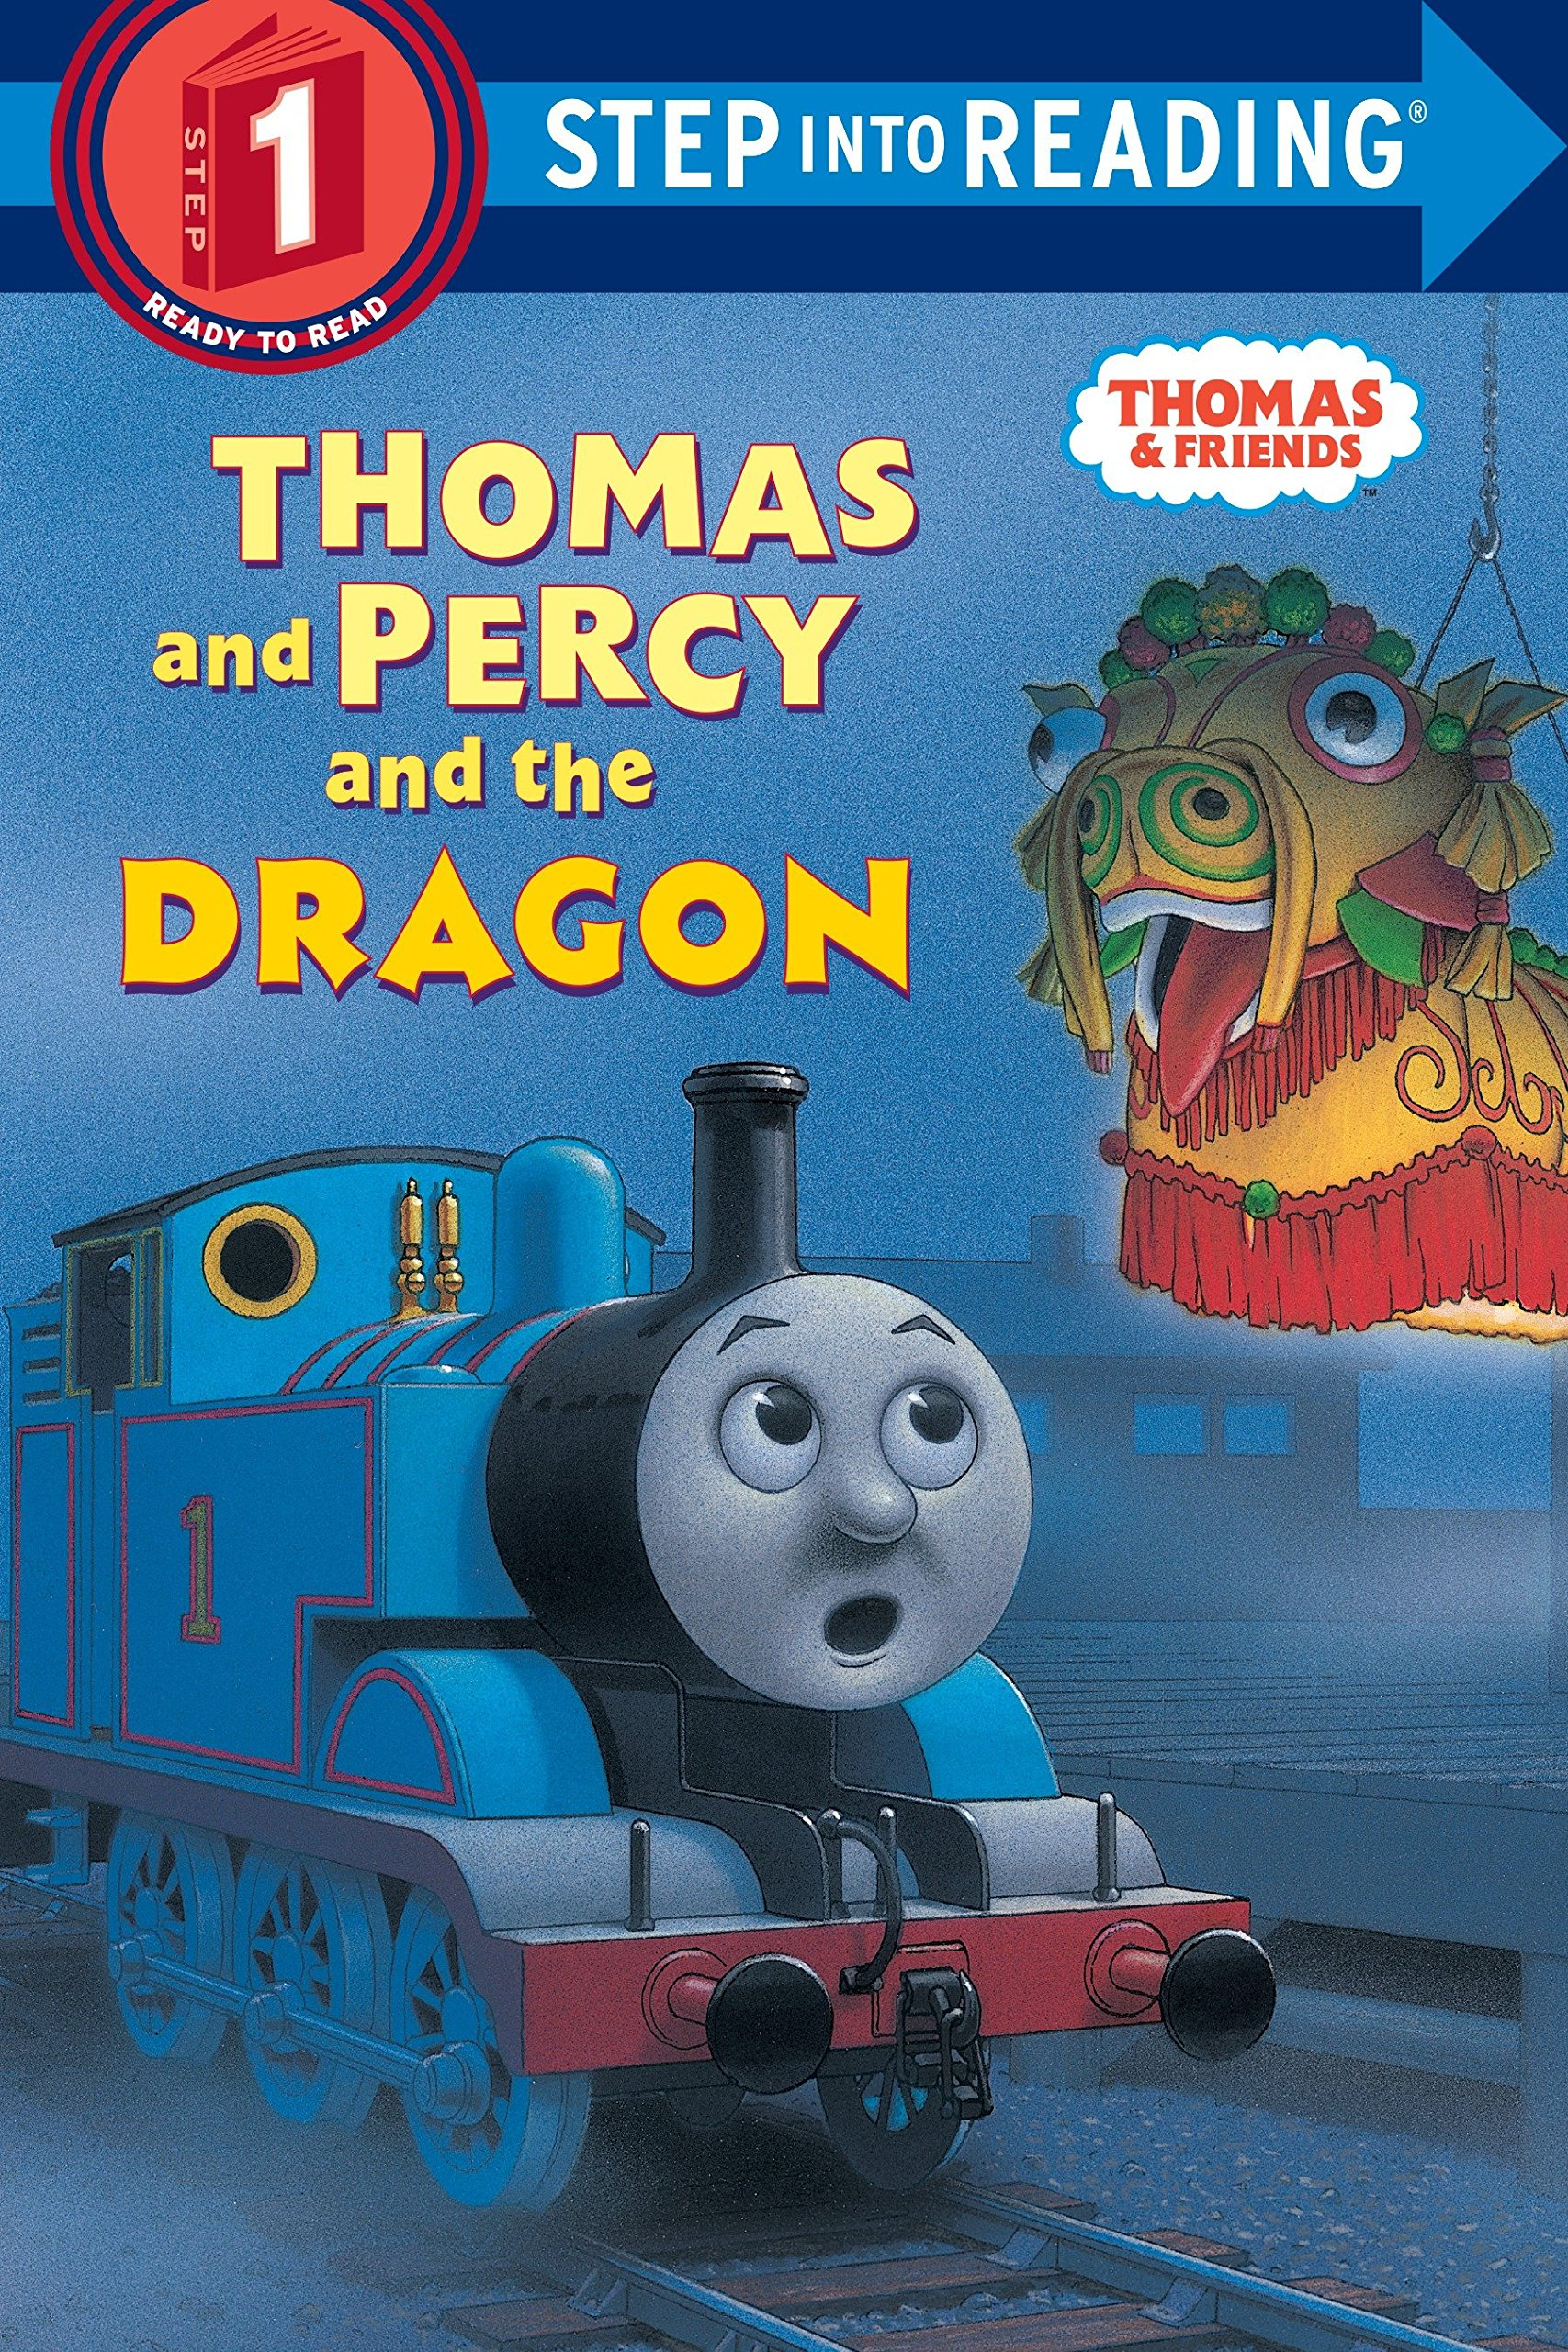 Thomas and Percy and the Dragon (Thomas & Friends) (Step into Reading) Paperback – June 24, 2003 Rev. W. Awdry Richard Courtney 0375822305 Readers - Beginner